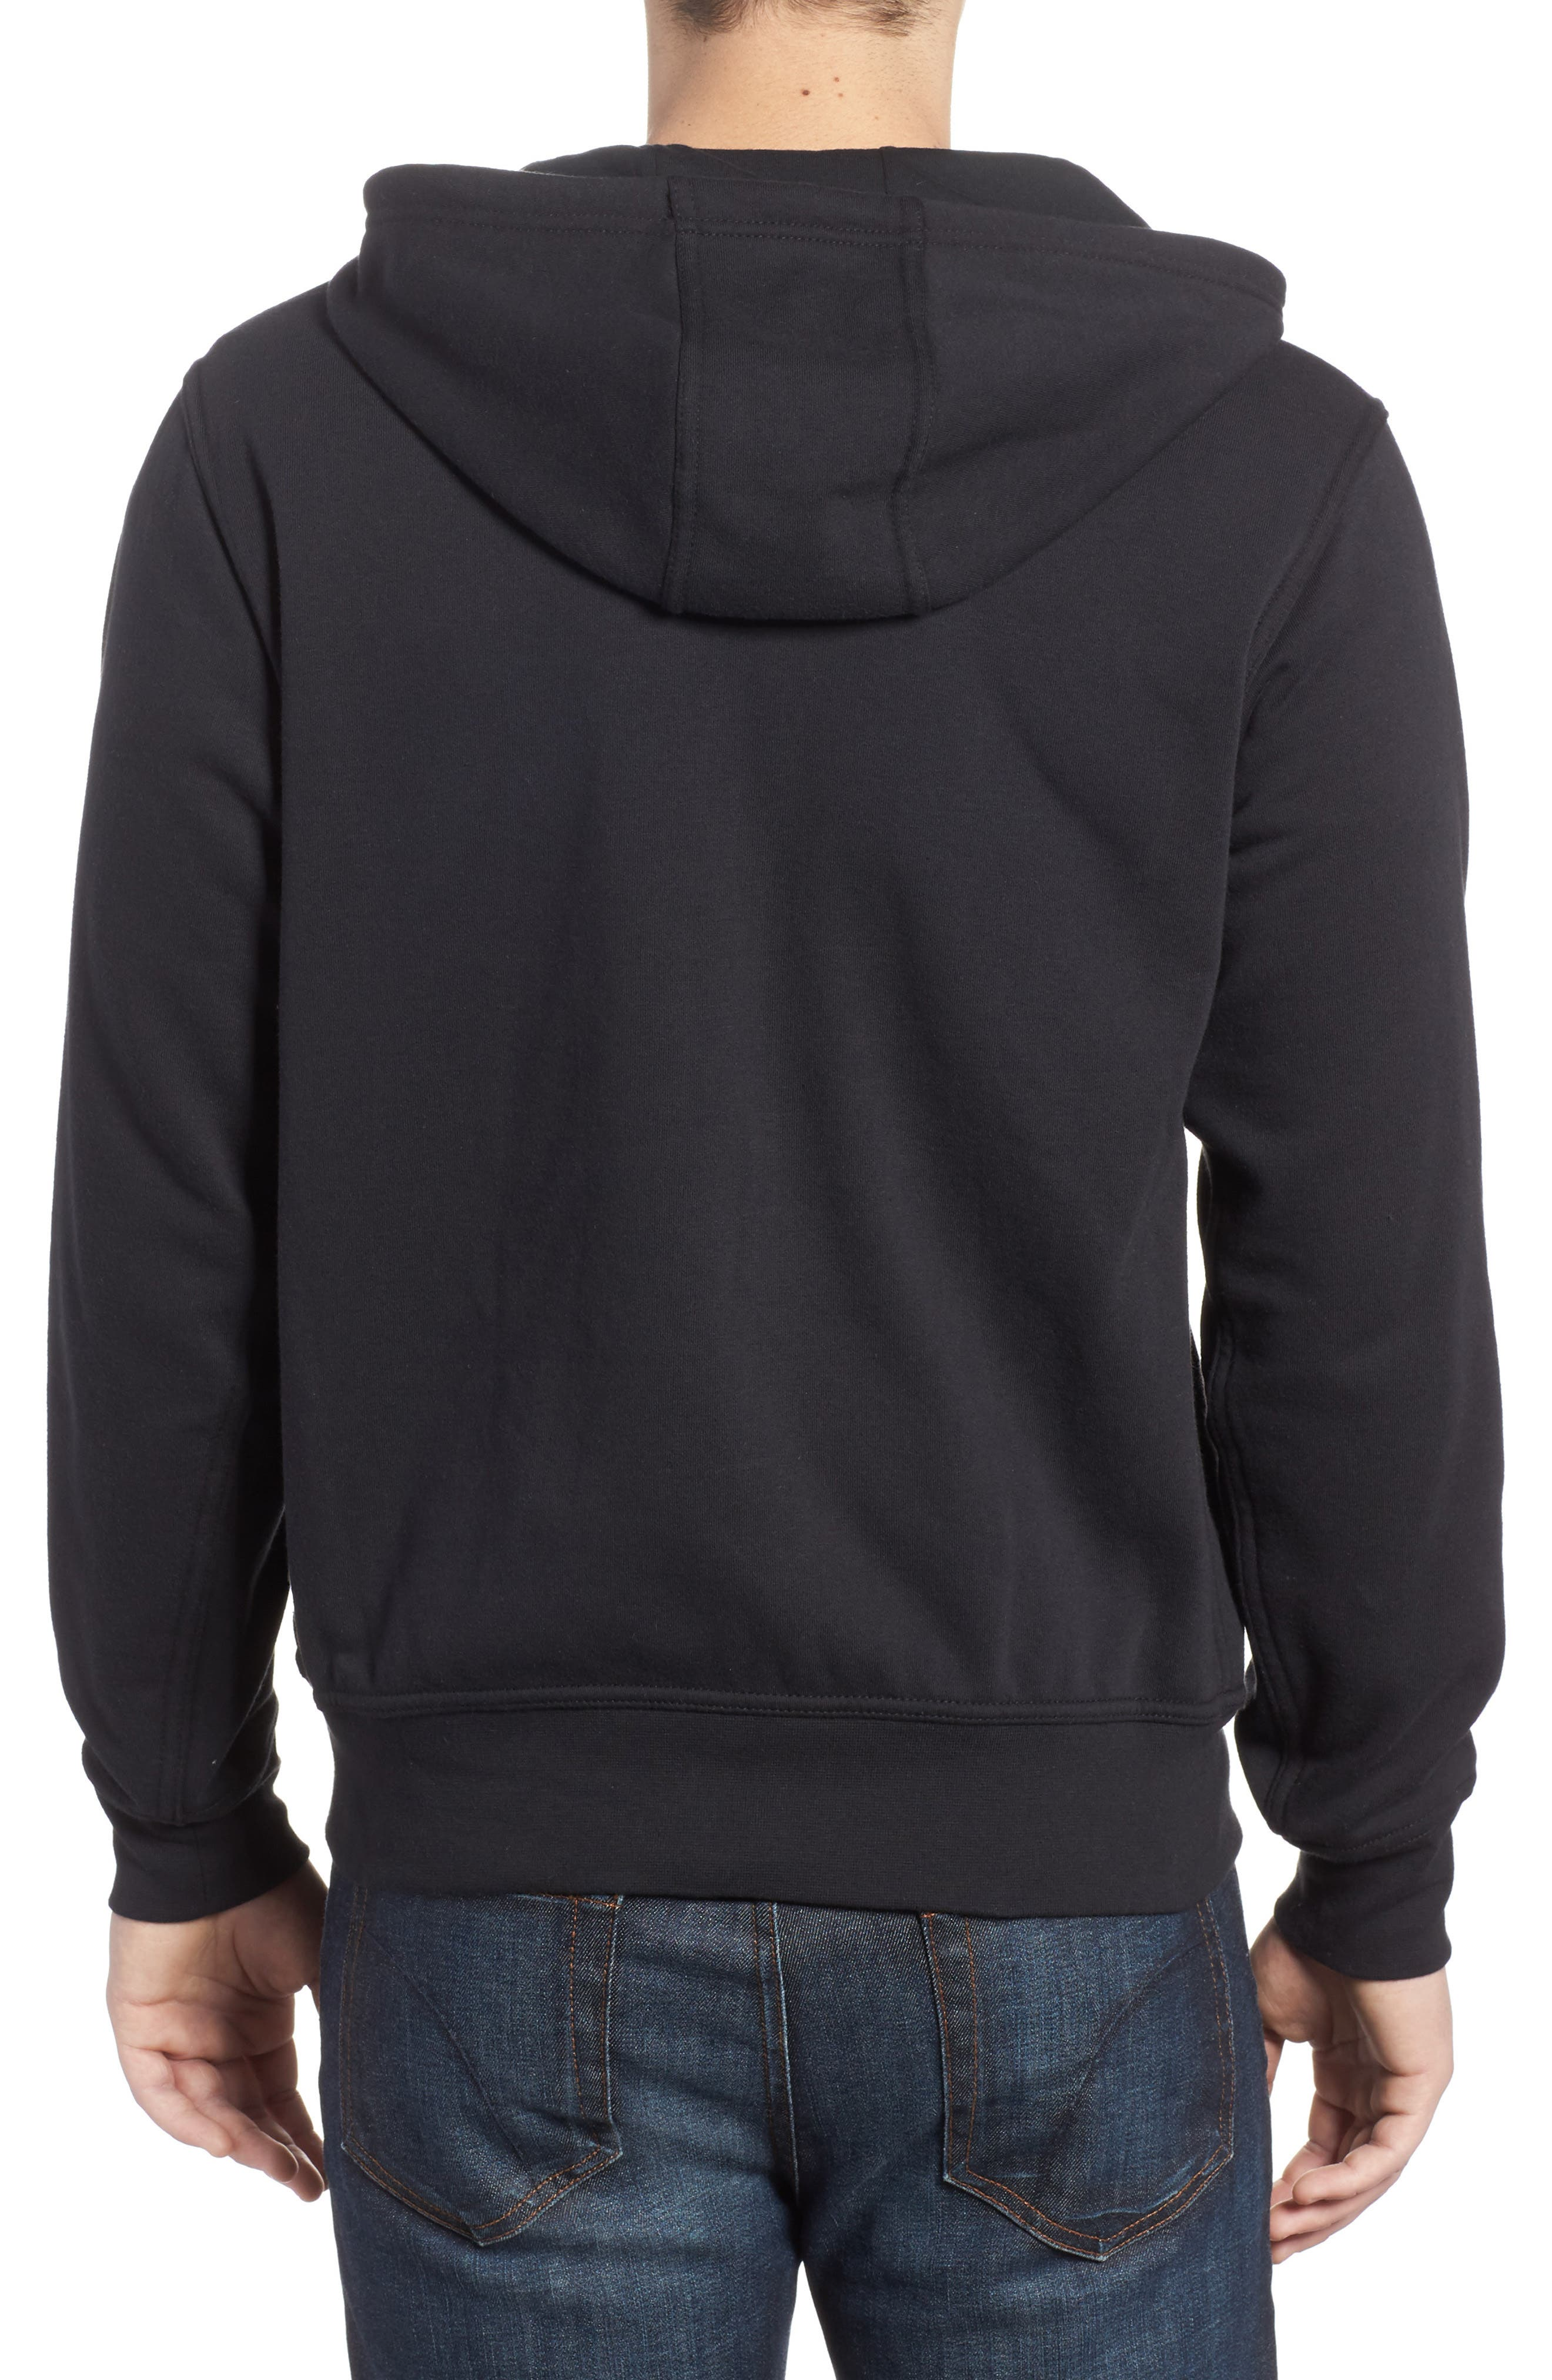 Half Dome Cotton Blend Zip Hoodie,                             Alternate thumbnail 2, color,                             001